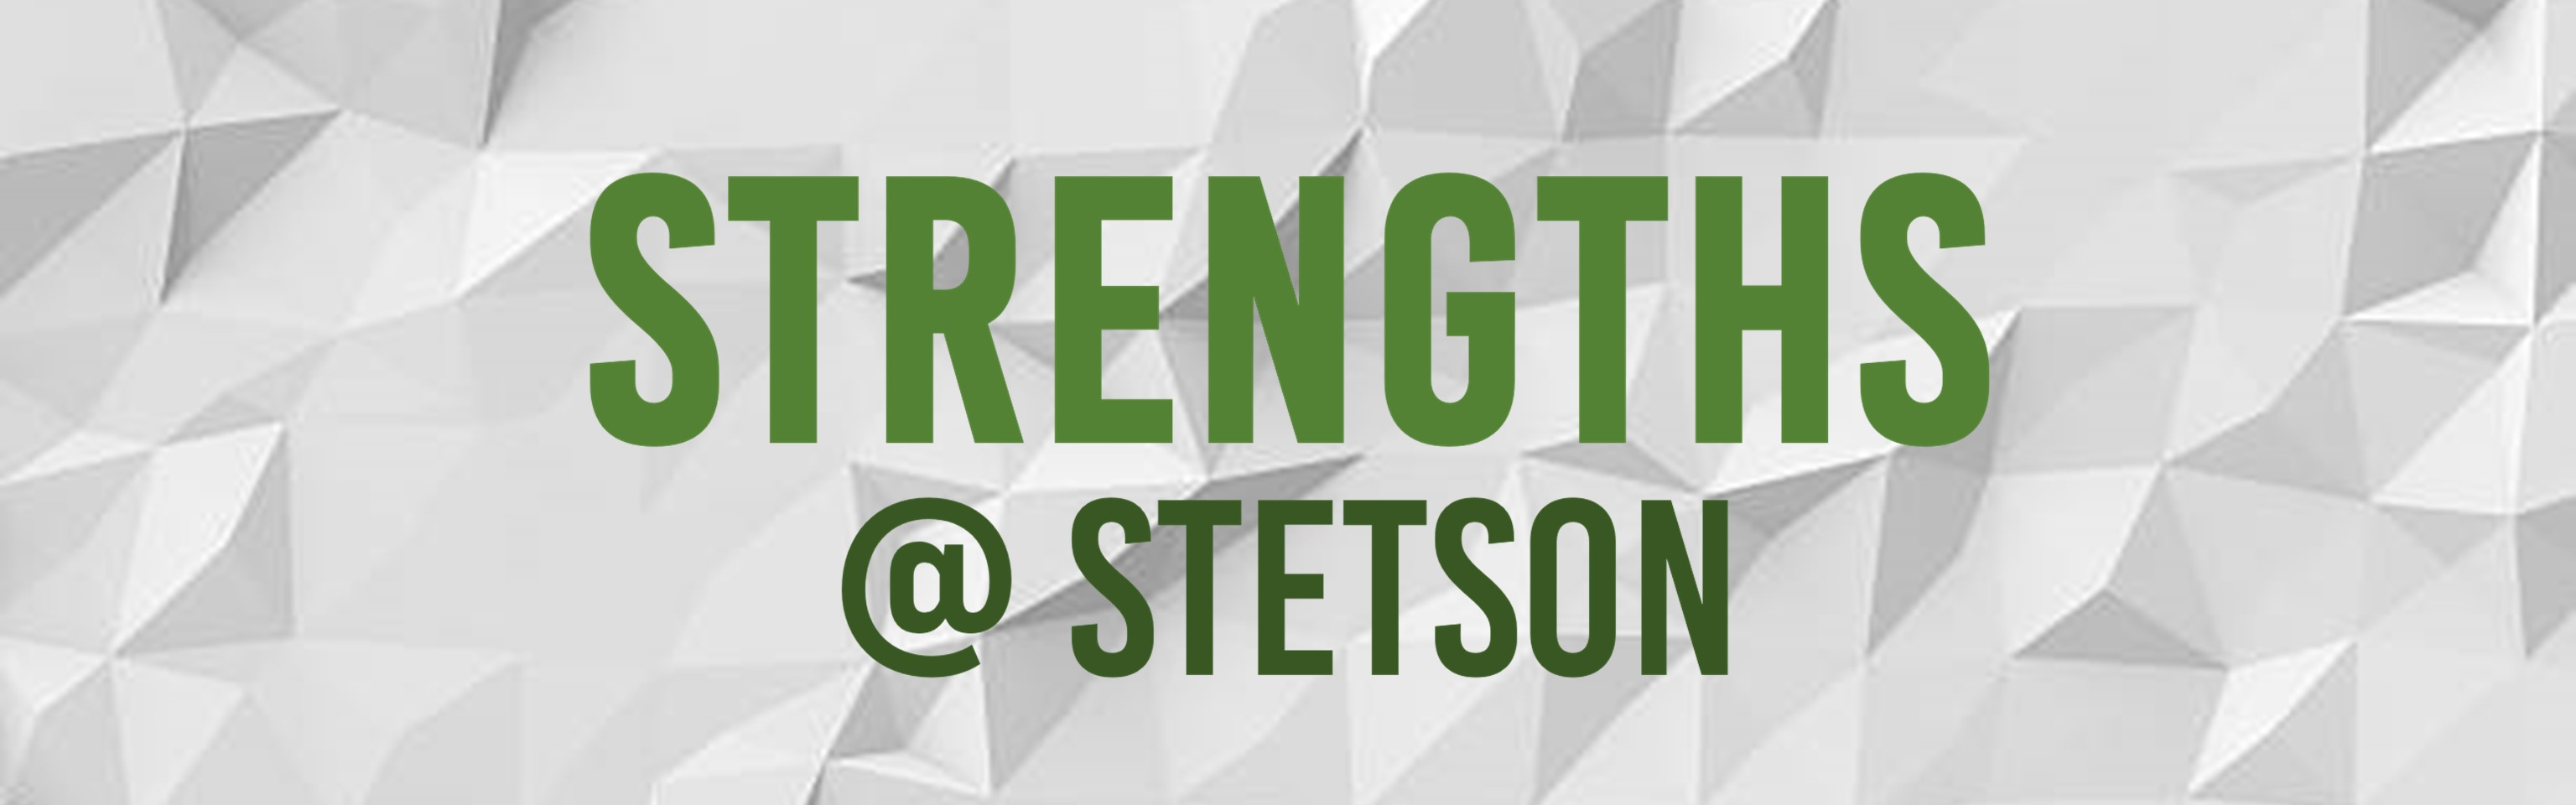 Strengths at Stetson Wordmark on texture white background